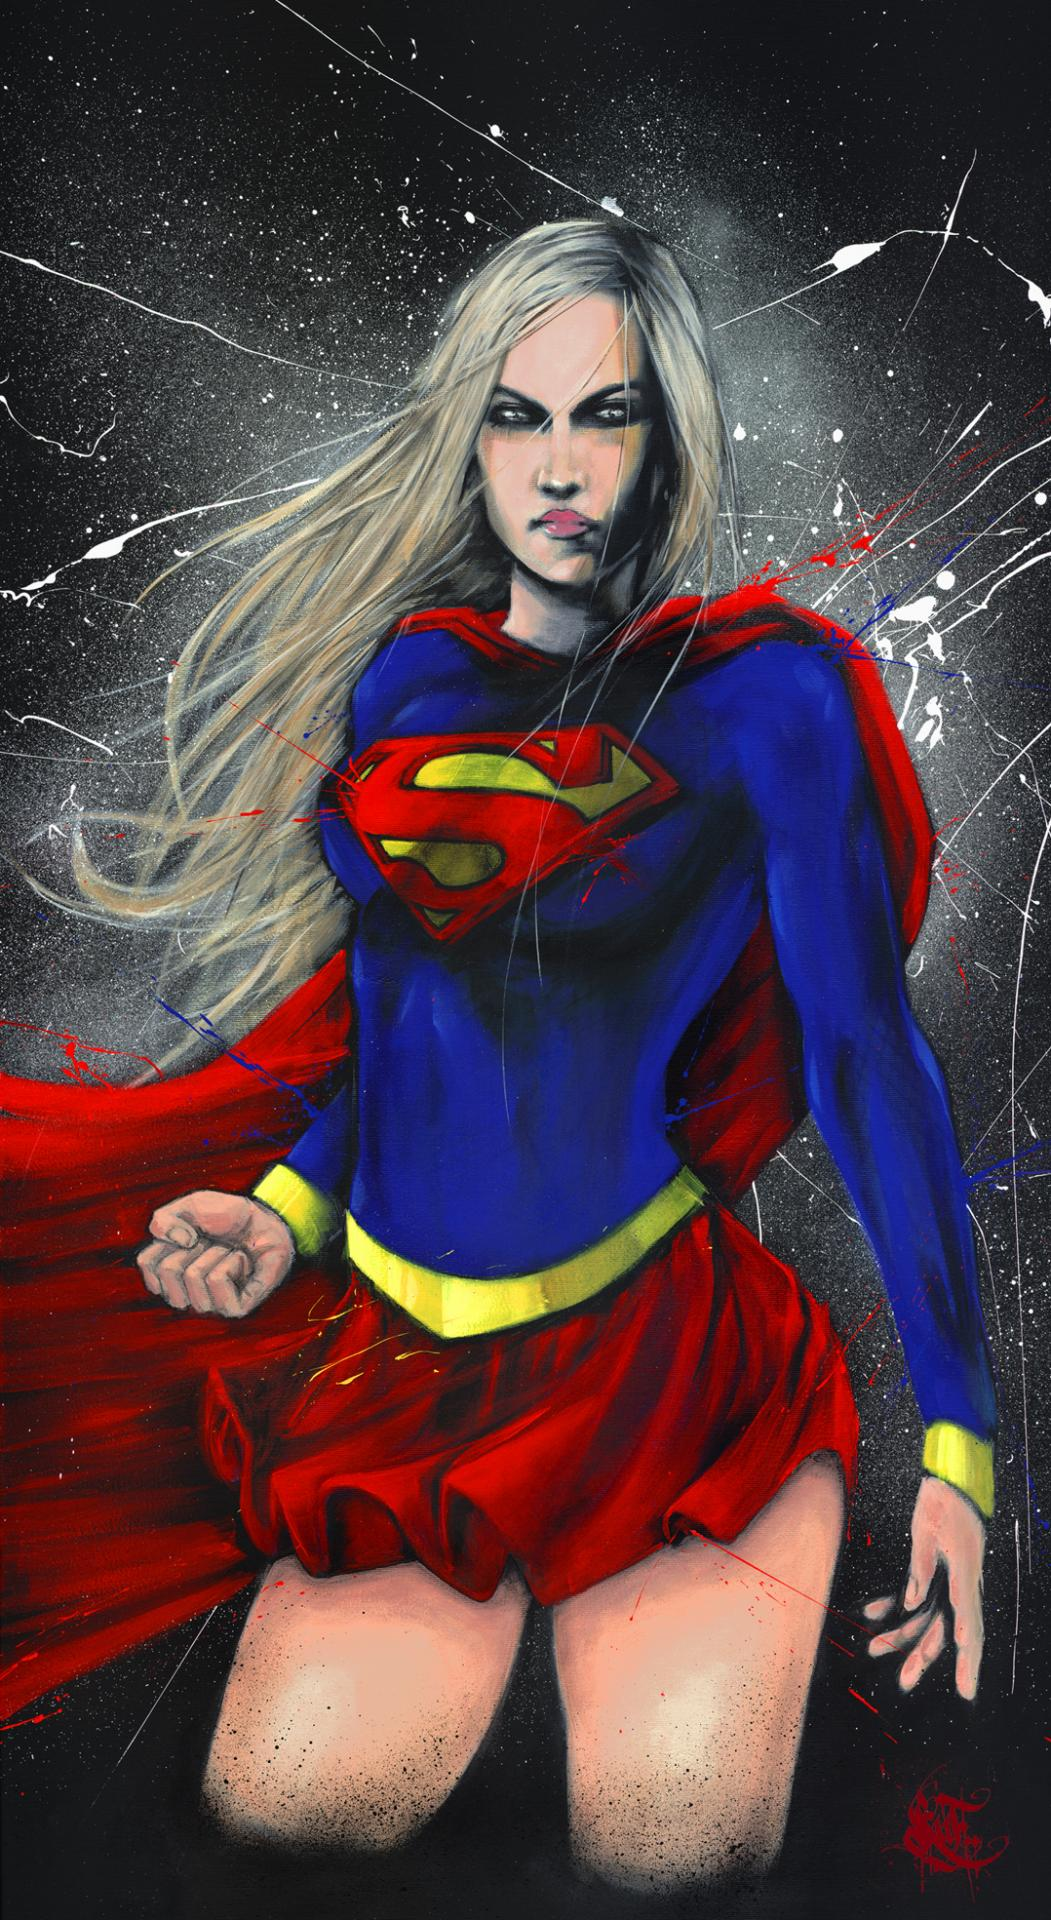 Superfille